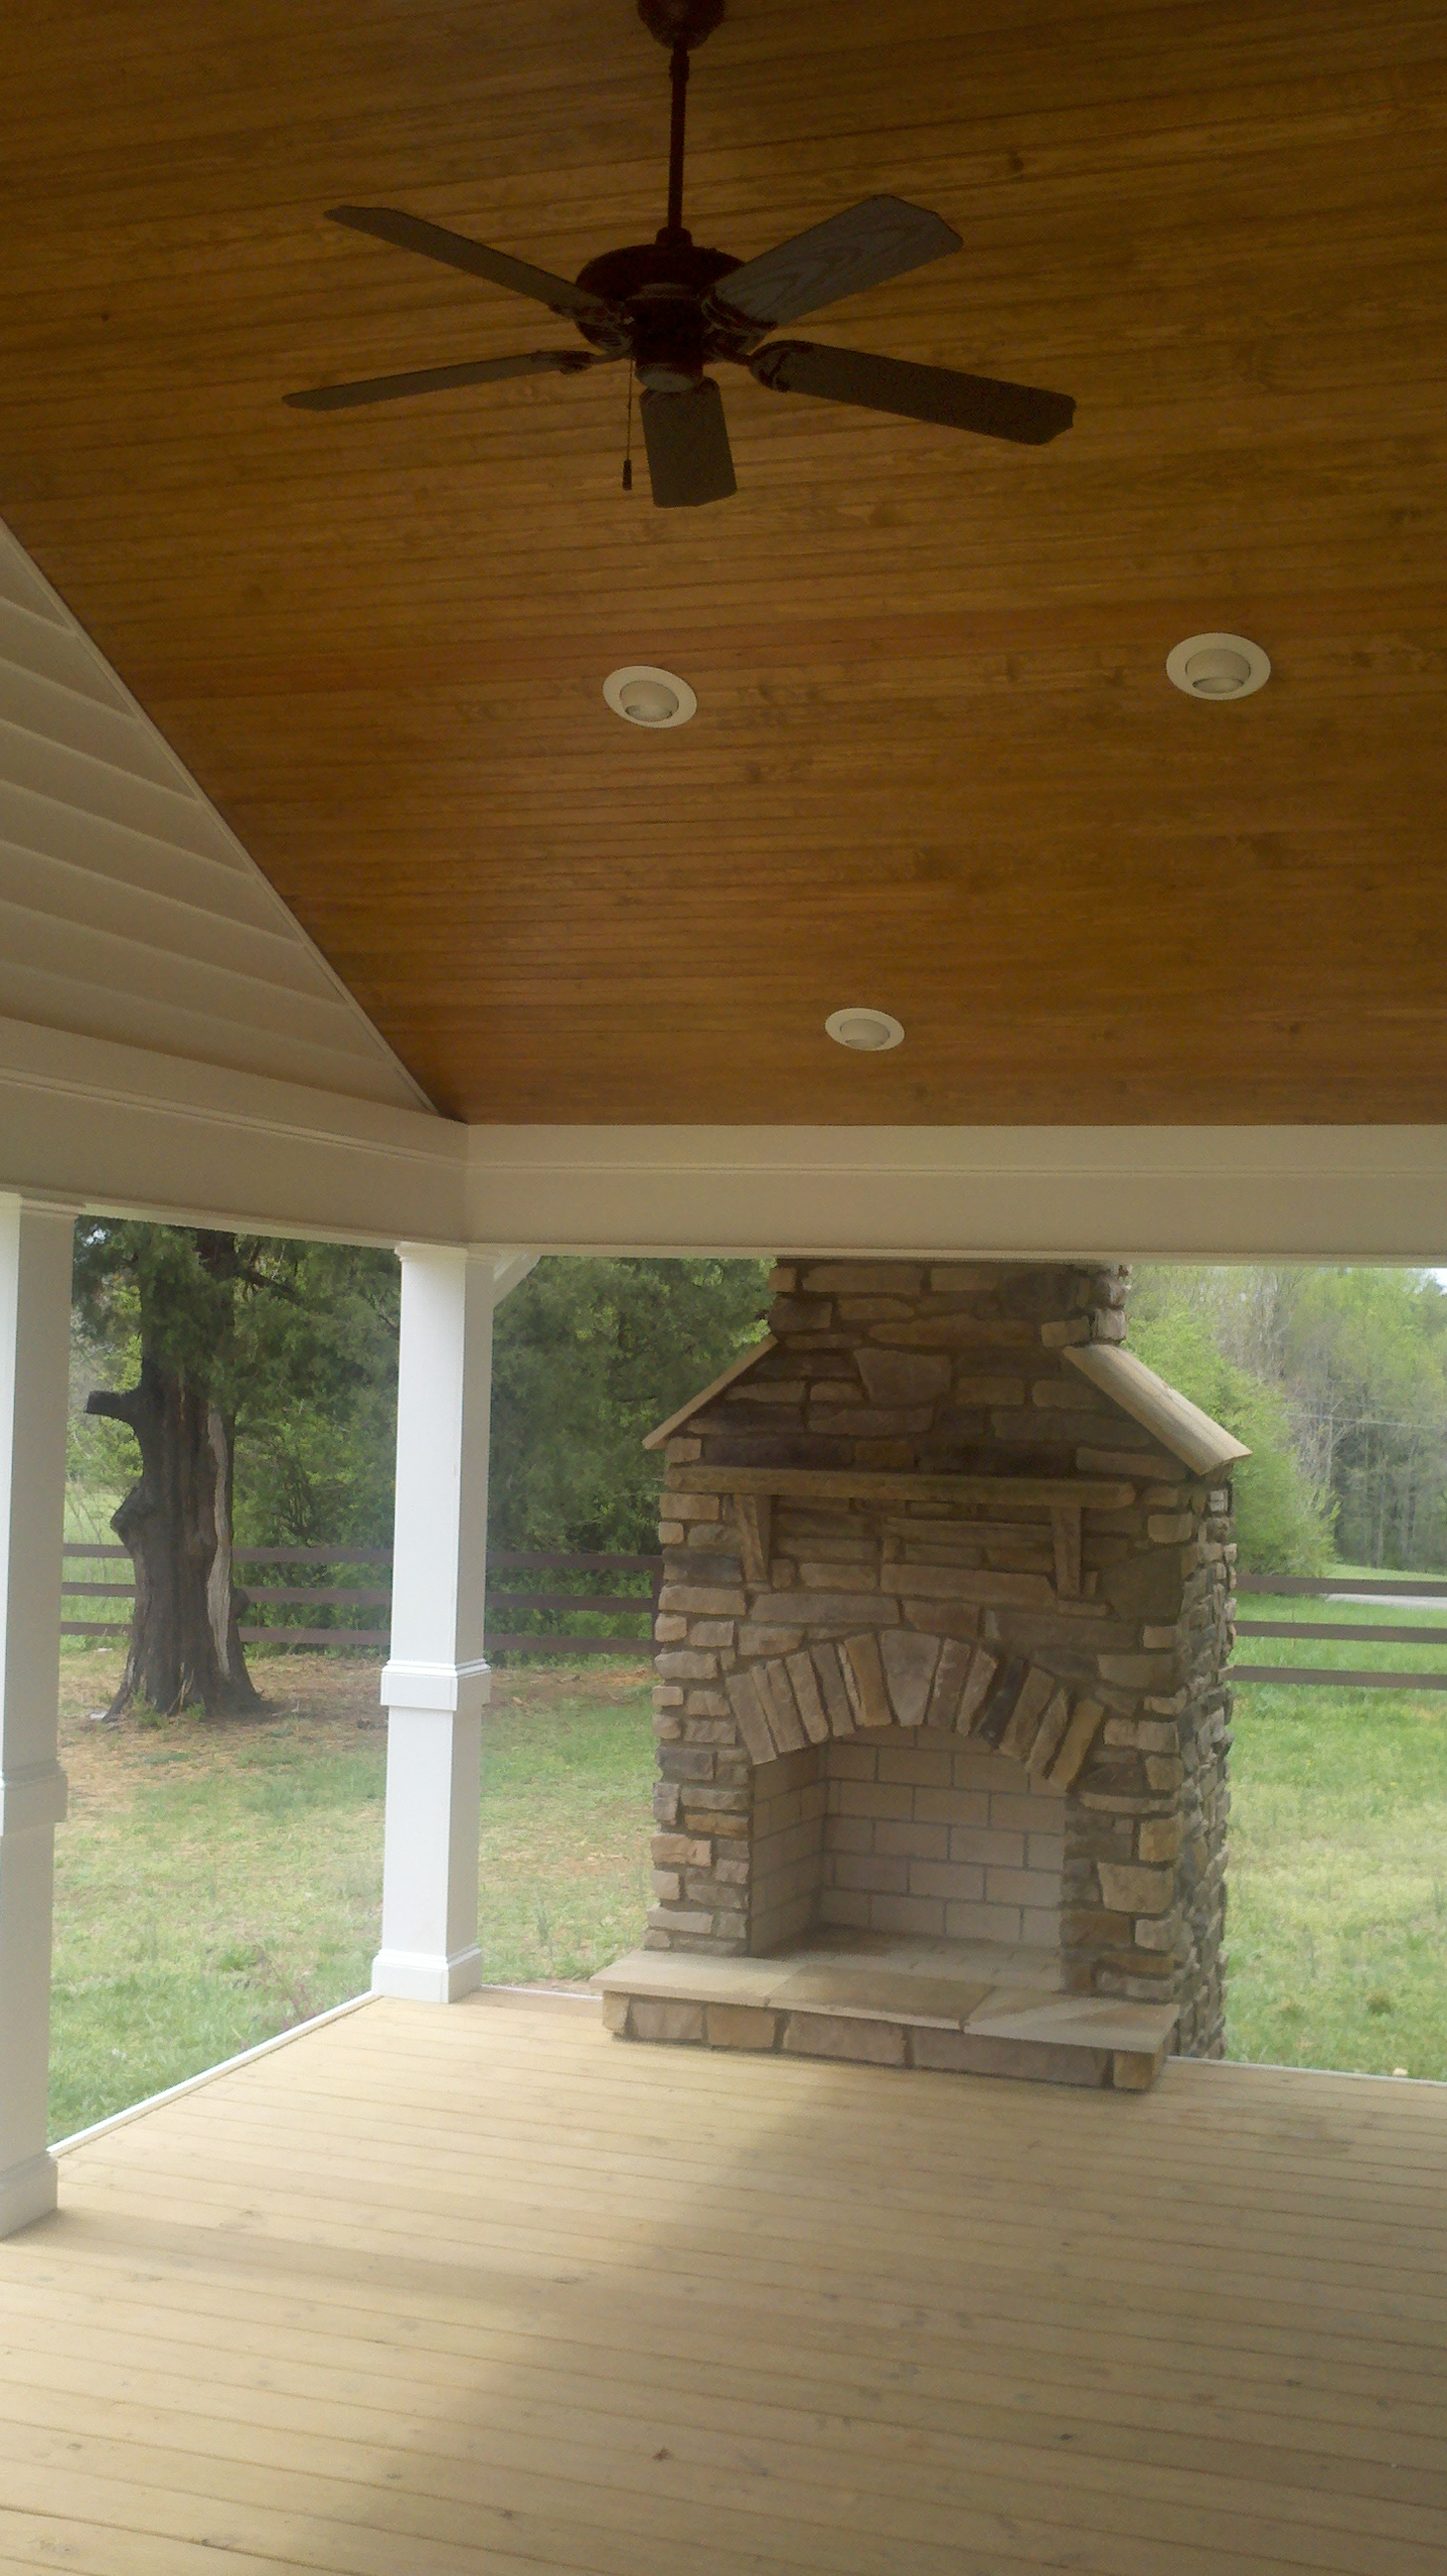 Home DIY Carport Kits North Carolina NC with the widest selection of carports, carport kits, utility carports and rv carports in the industry! Call toll free today!!!